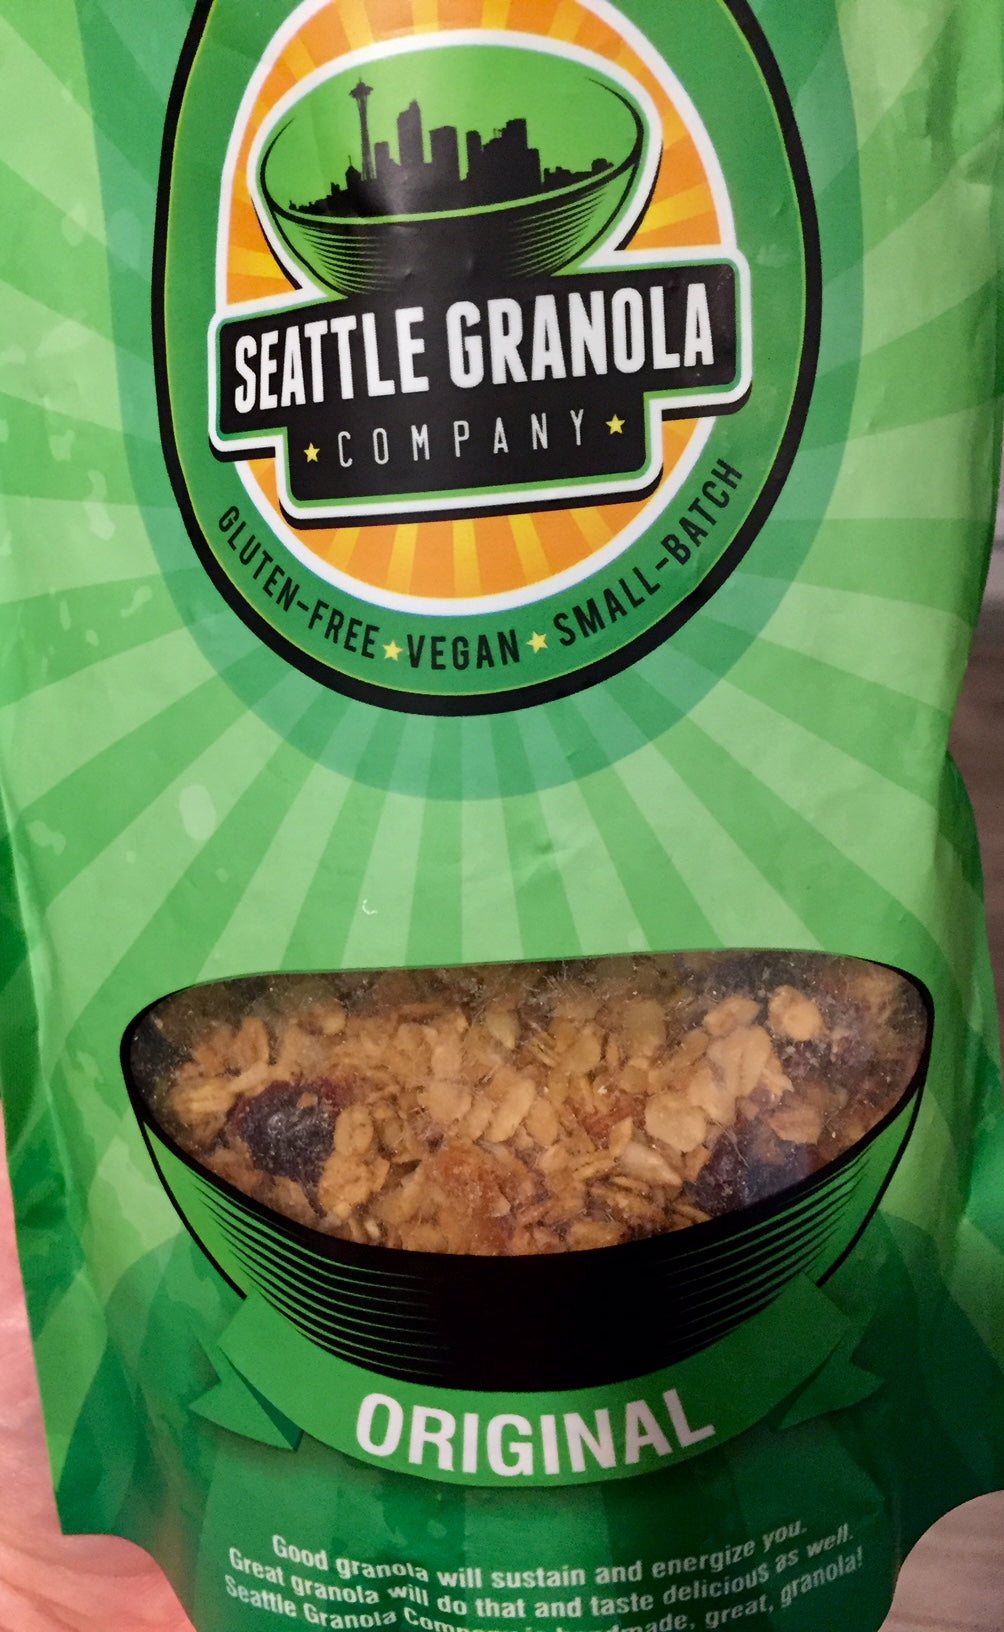 Seattle Granola Company